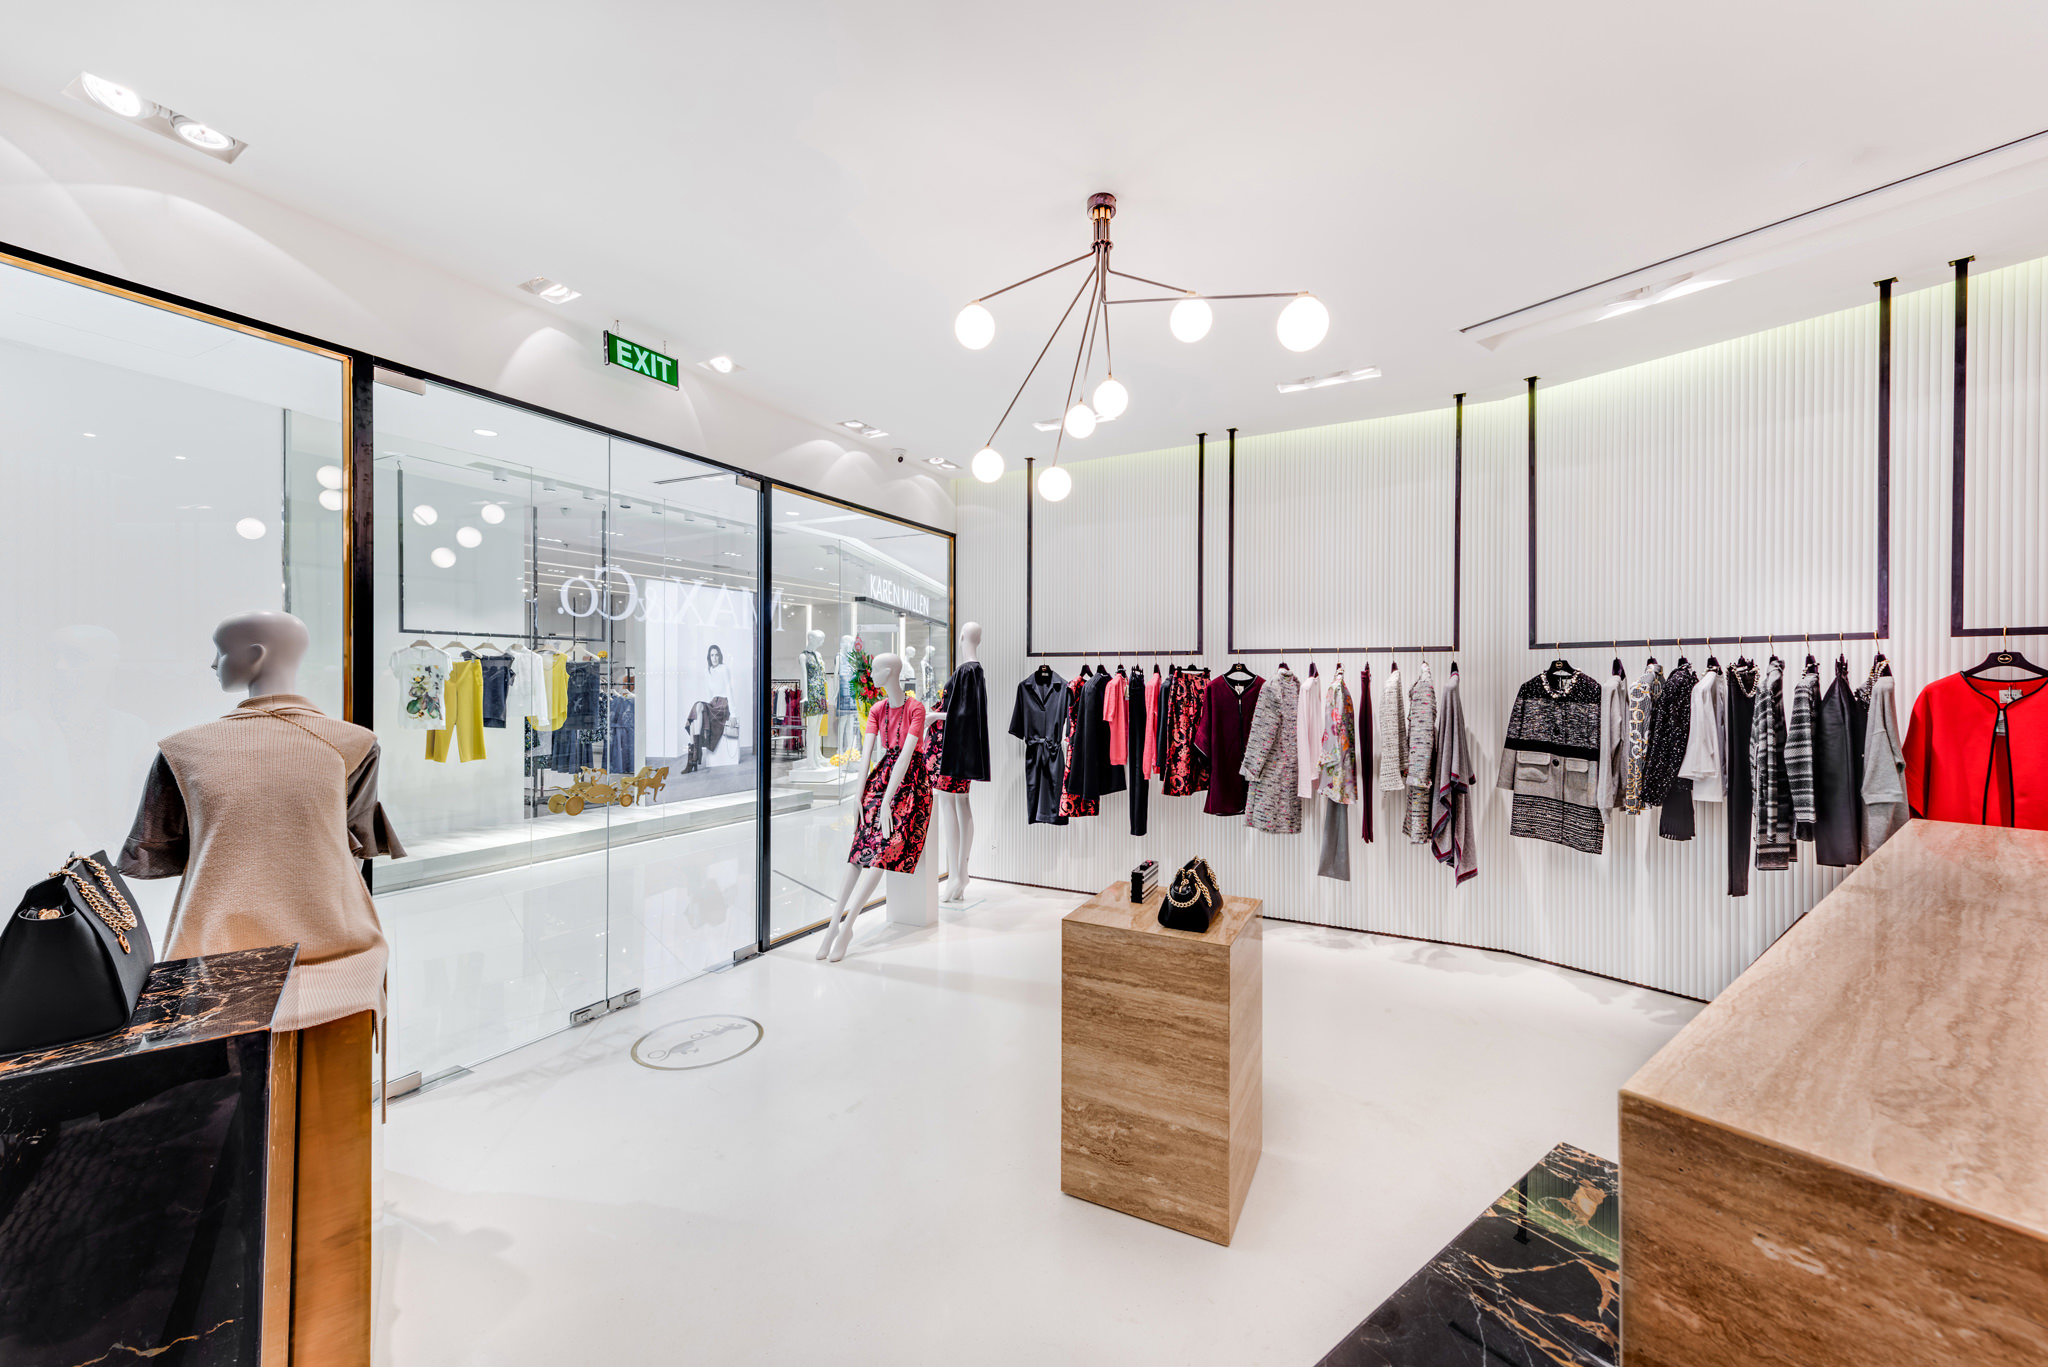 20160801 - Weill - HCM - Commercial - Interior - Store - Retouch 0007.jpg